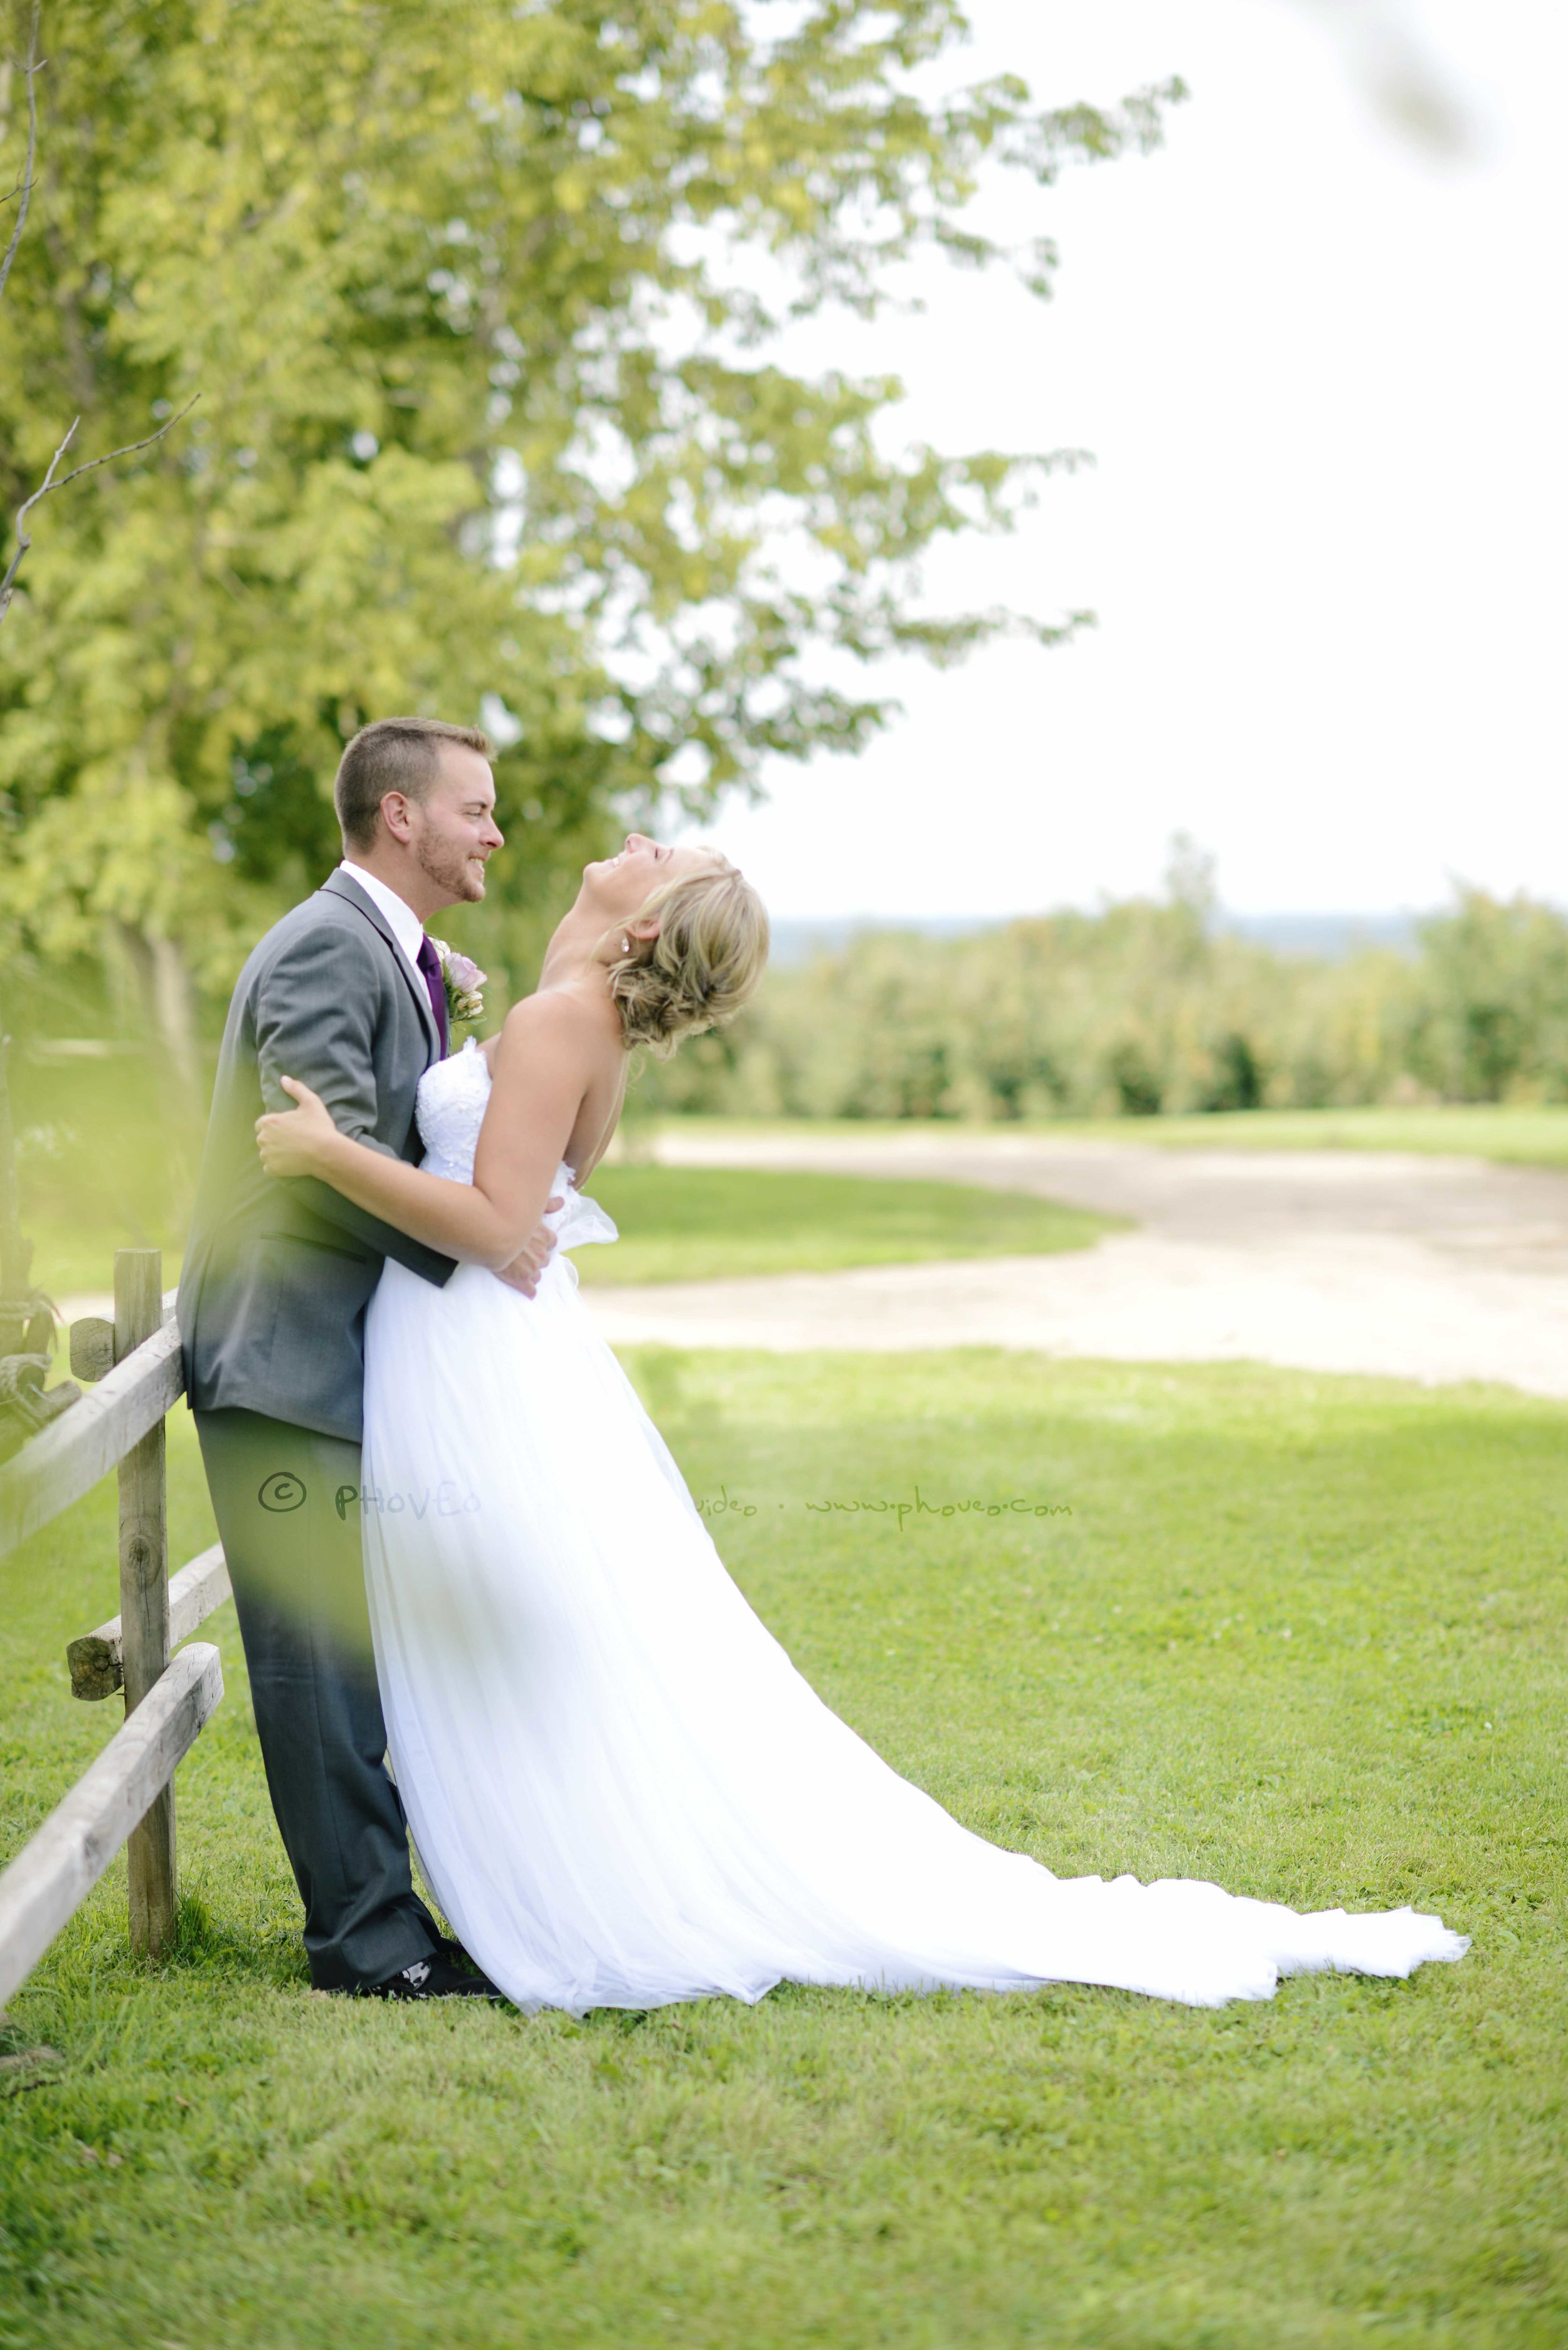 WM_20160826_Katelyn+Tony_10.jpg